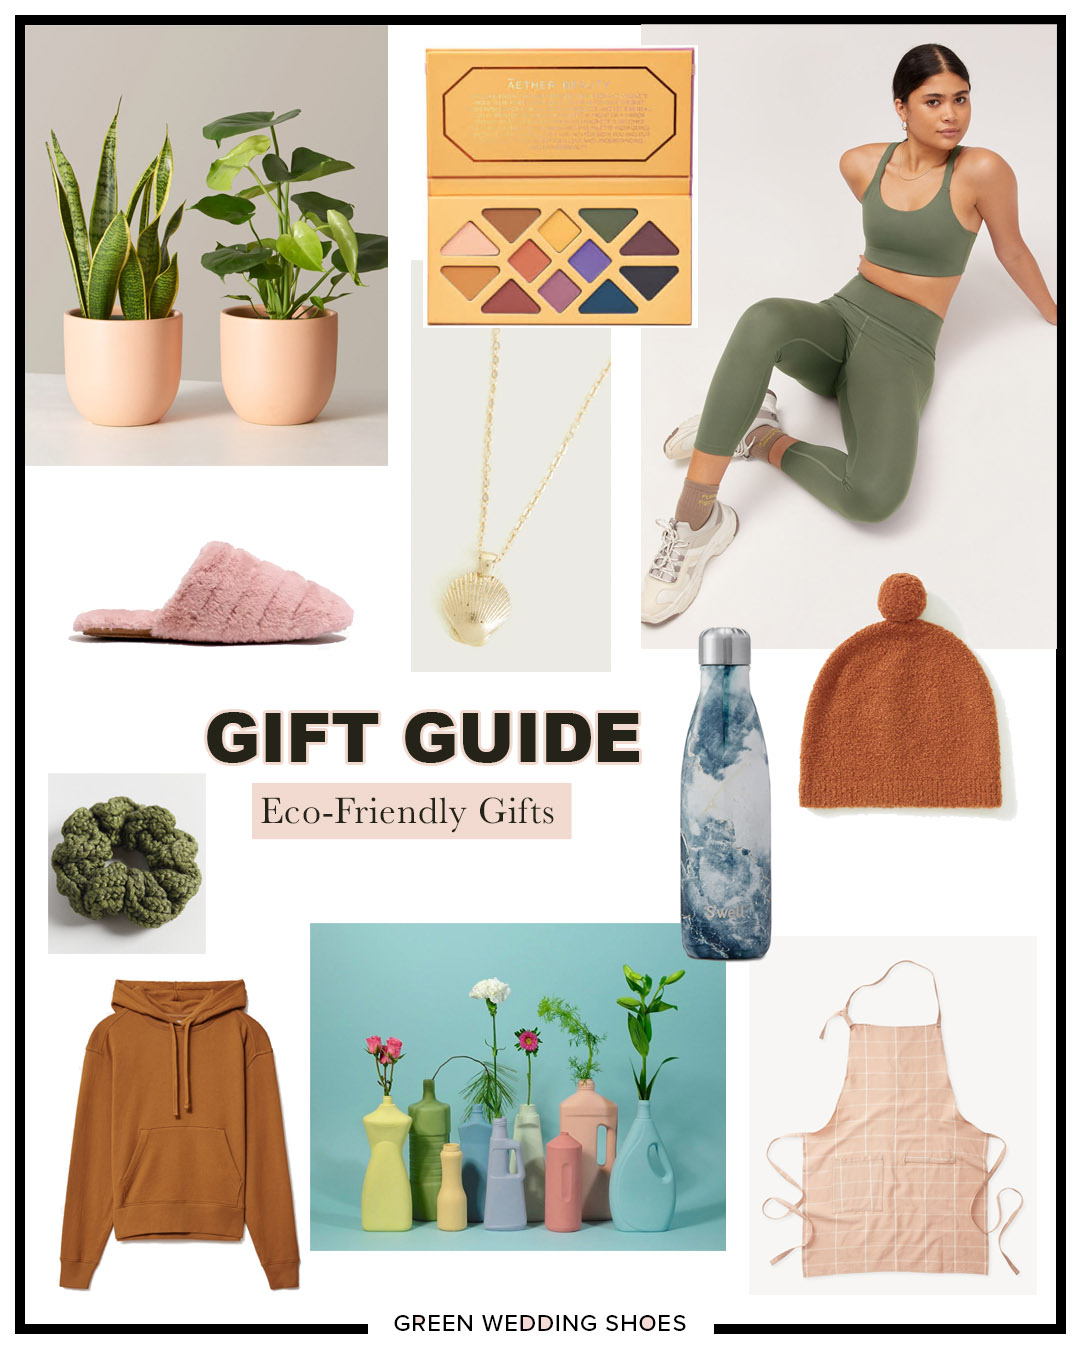 Gift Guide for Eco-Friendly Gifts